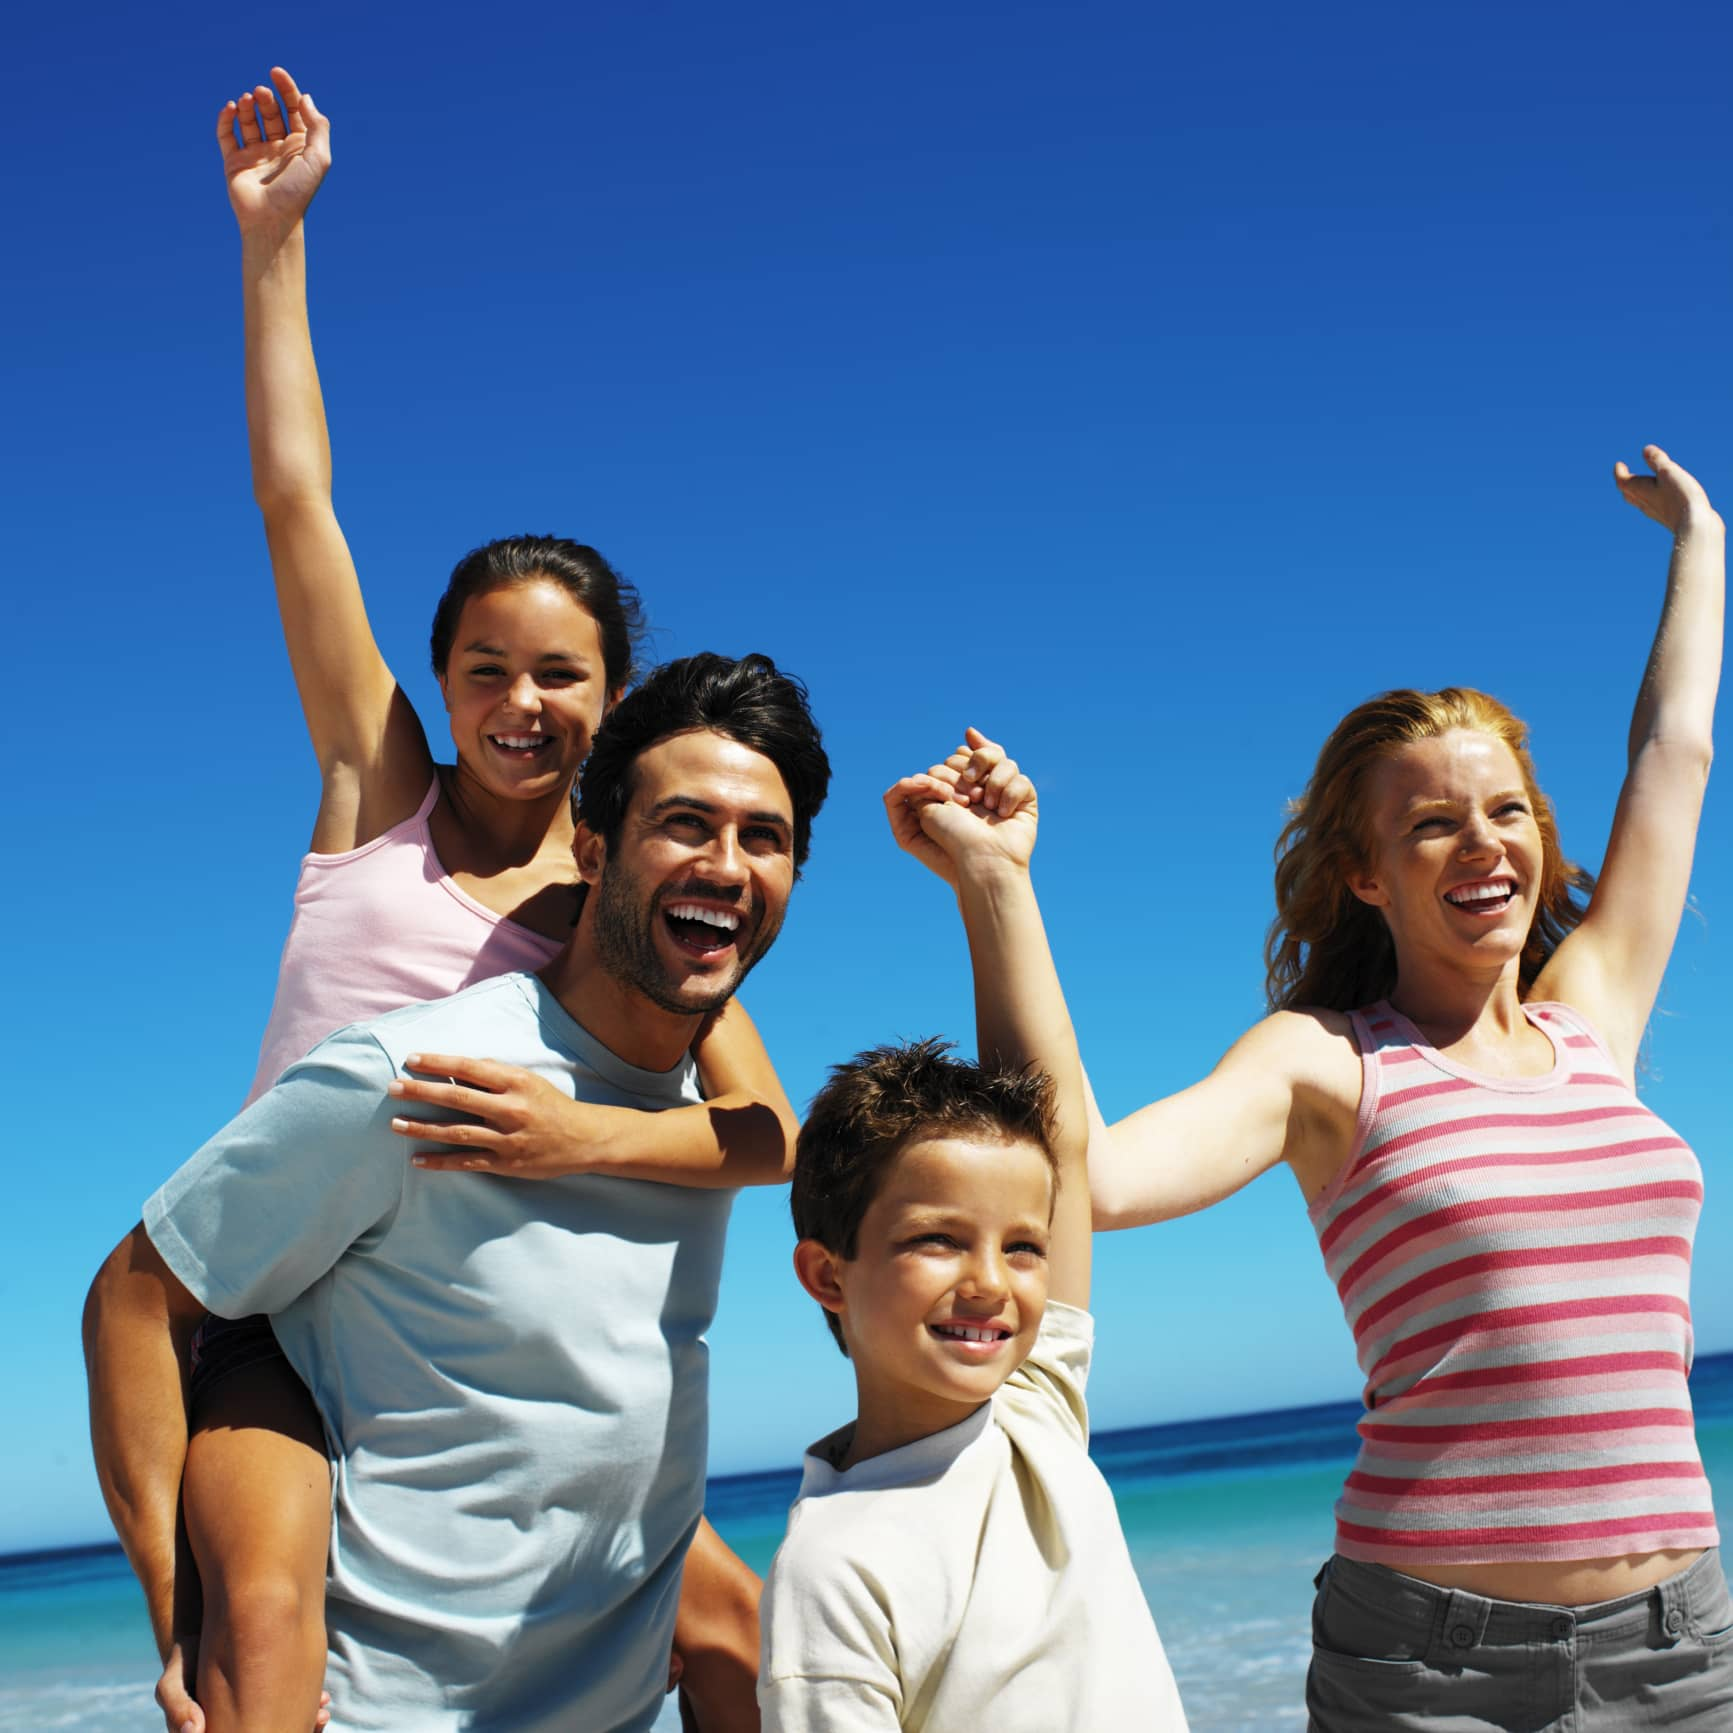 Danbury Dentists Share 3 Tips For Healthy Smiles While on Vacation